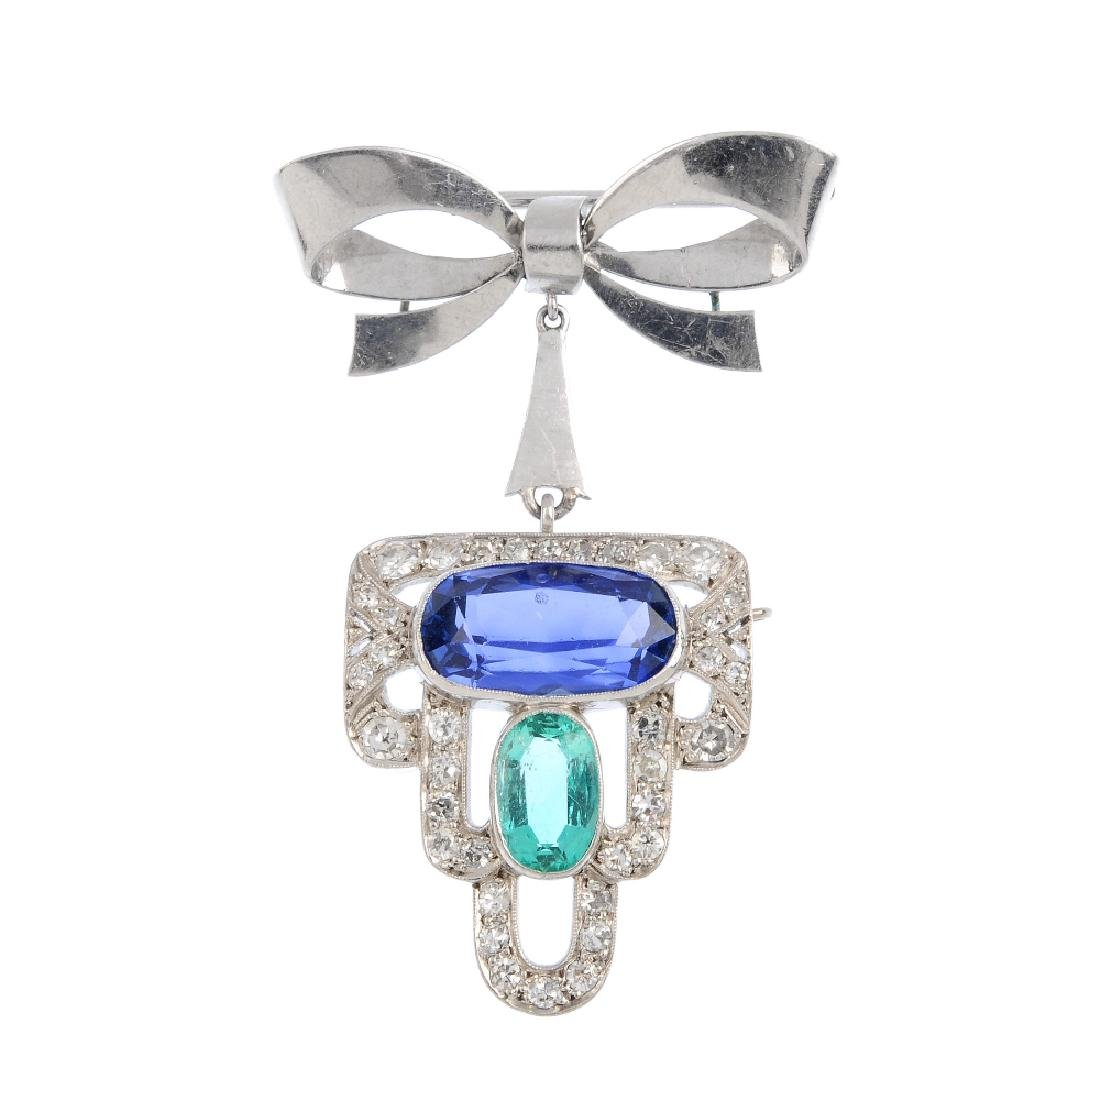 An Art Deco Burma sapphire, Colombian emerald and